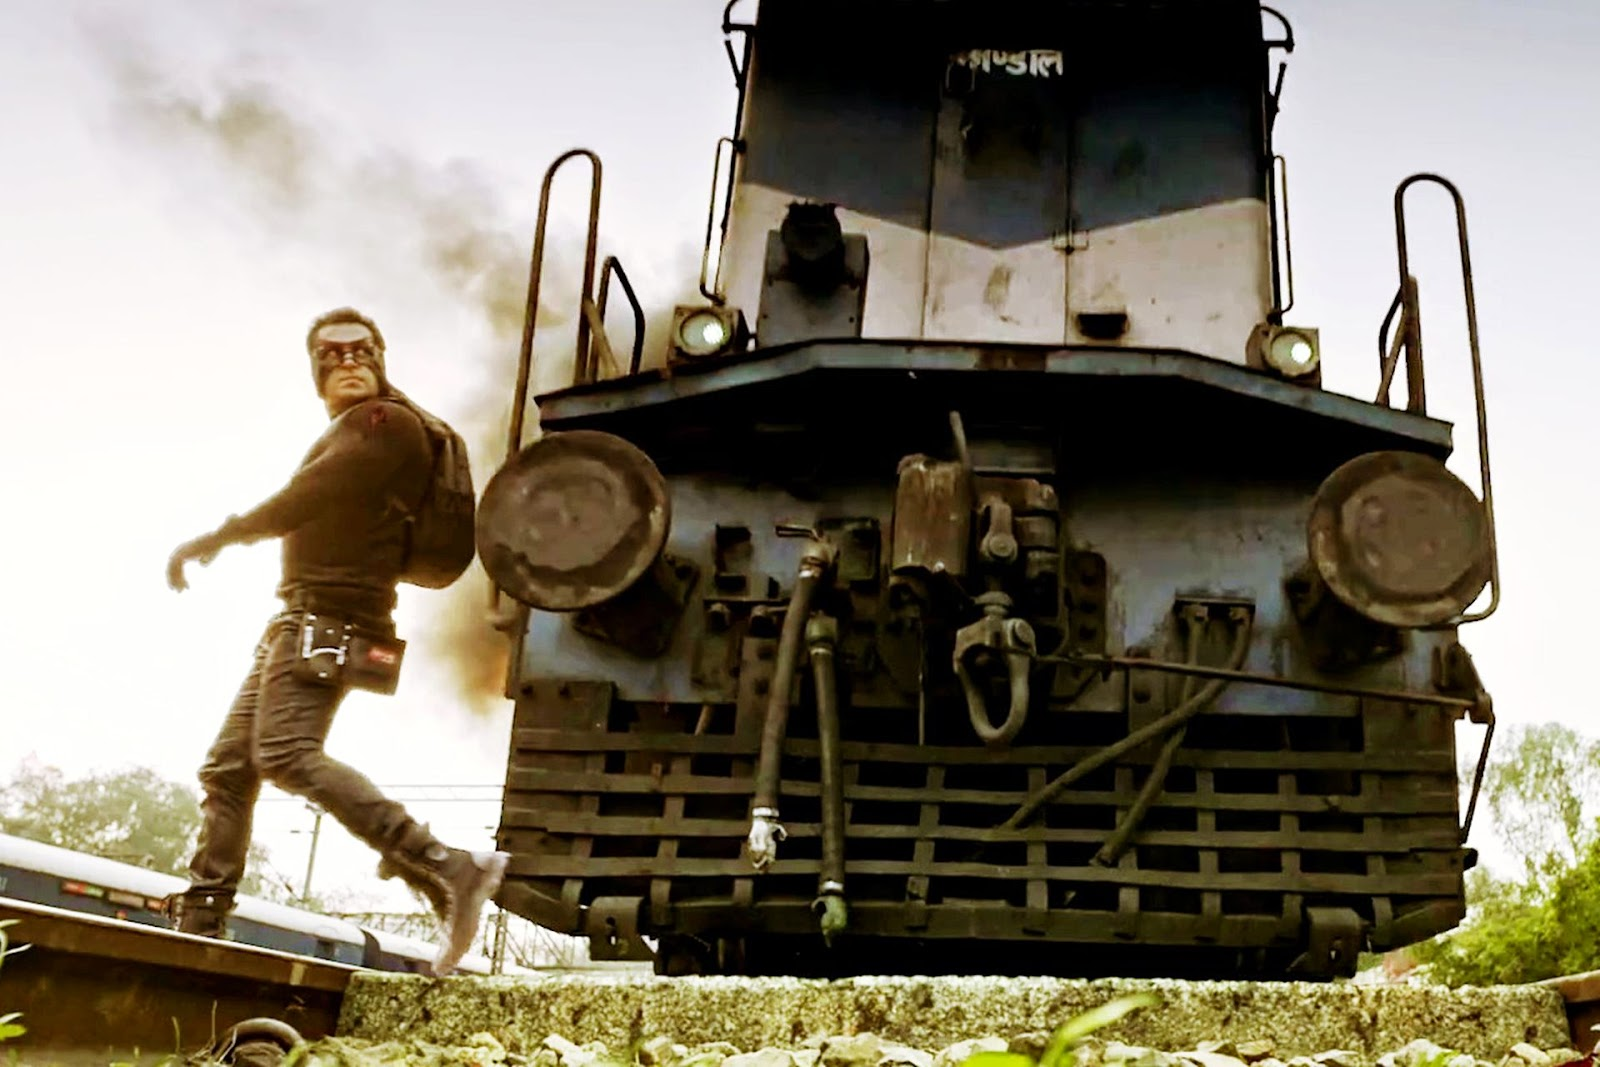 Salman Khan's train stunt in Kick